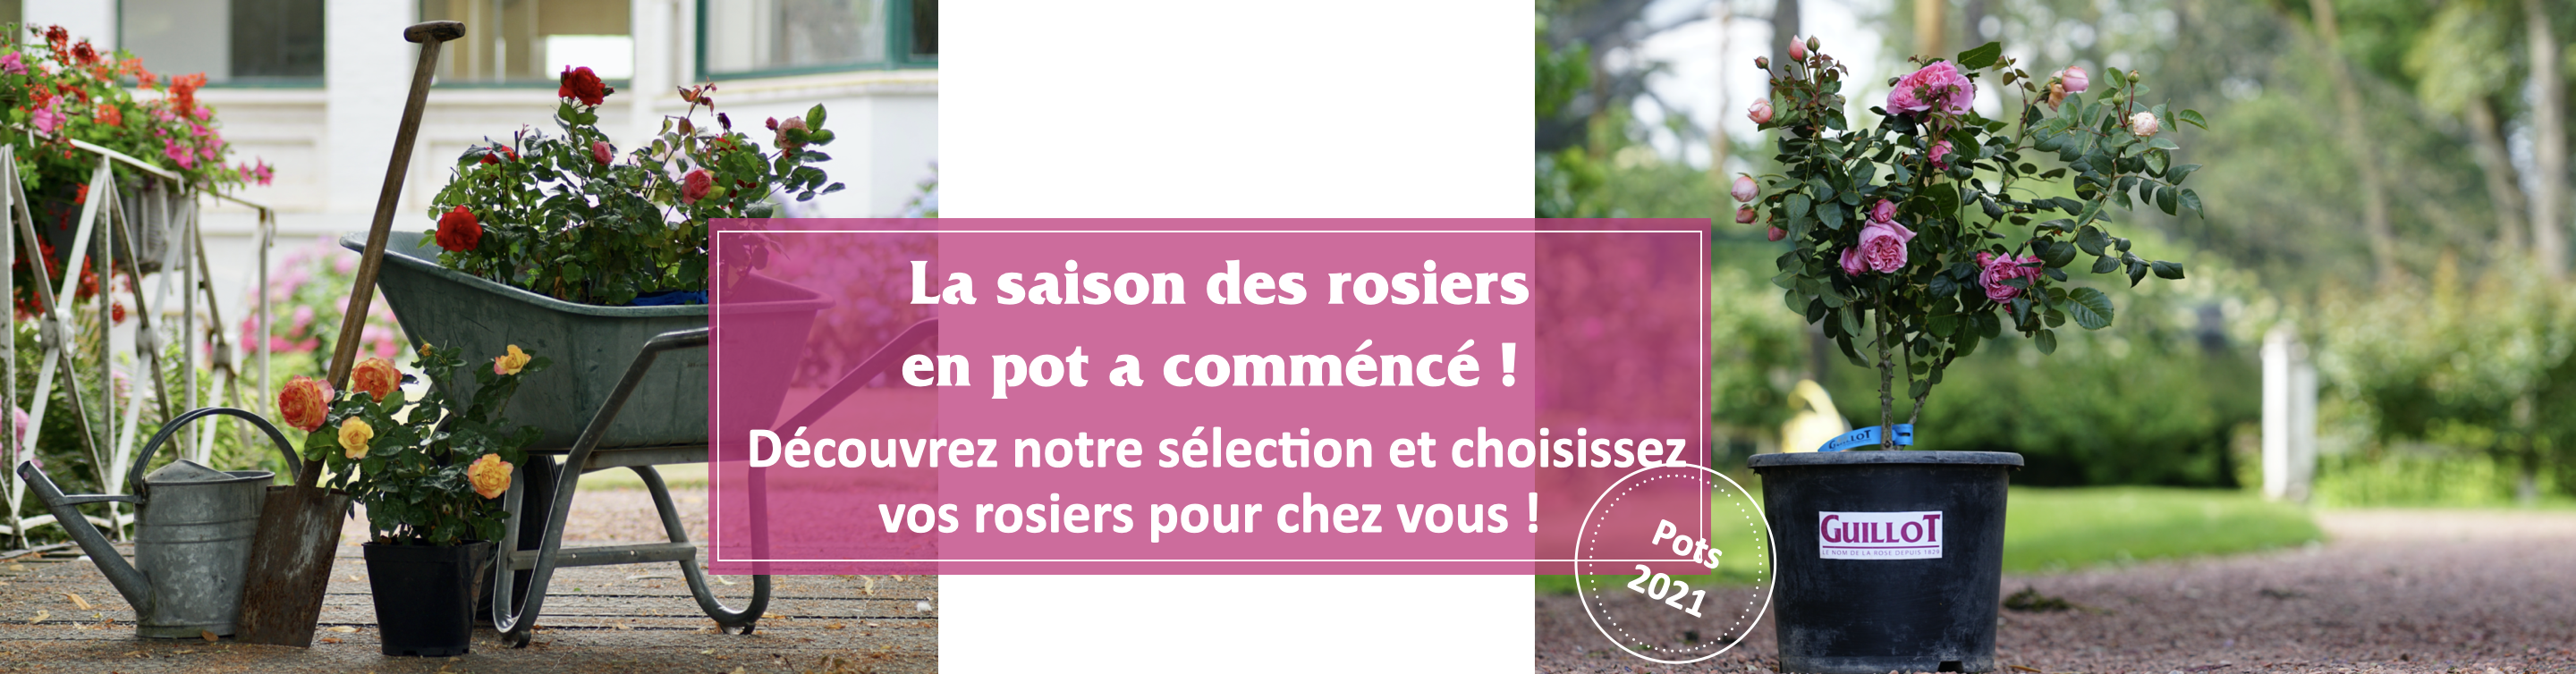 Rosier en Pot - Expedition 2021